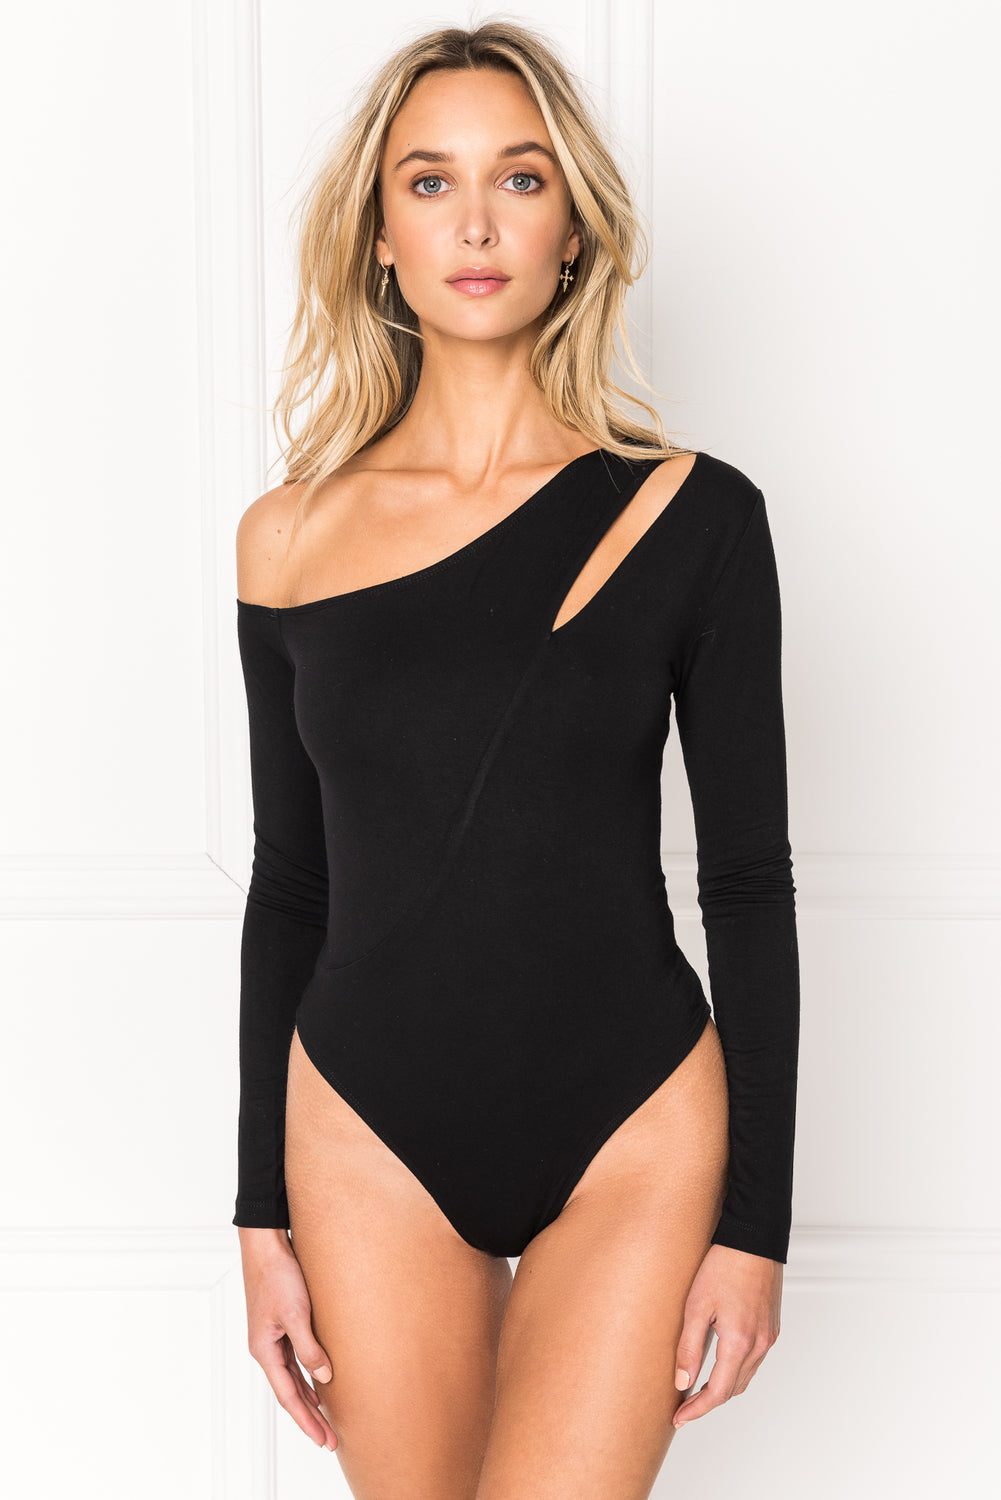 FLAVIA Black One Shoulder Bodysuit